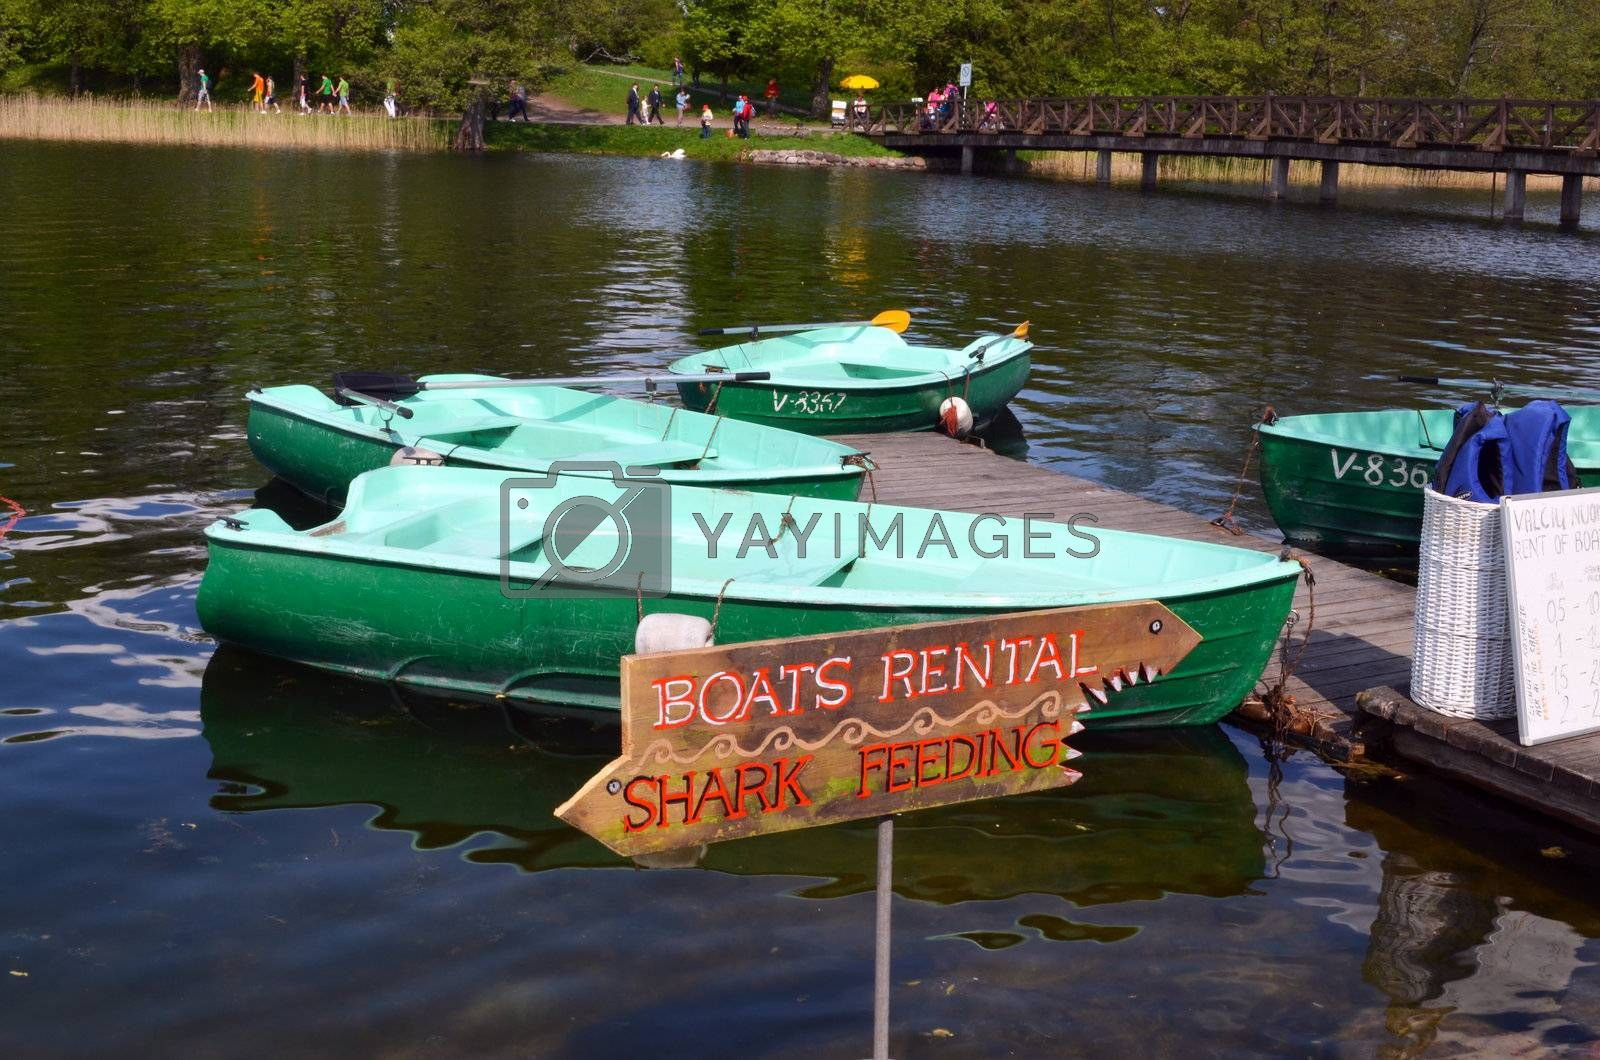 Boat rent near shore of Lake. Active outdoor recreation. Trakai, Lithuania.